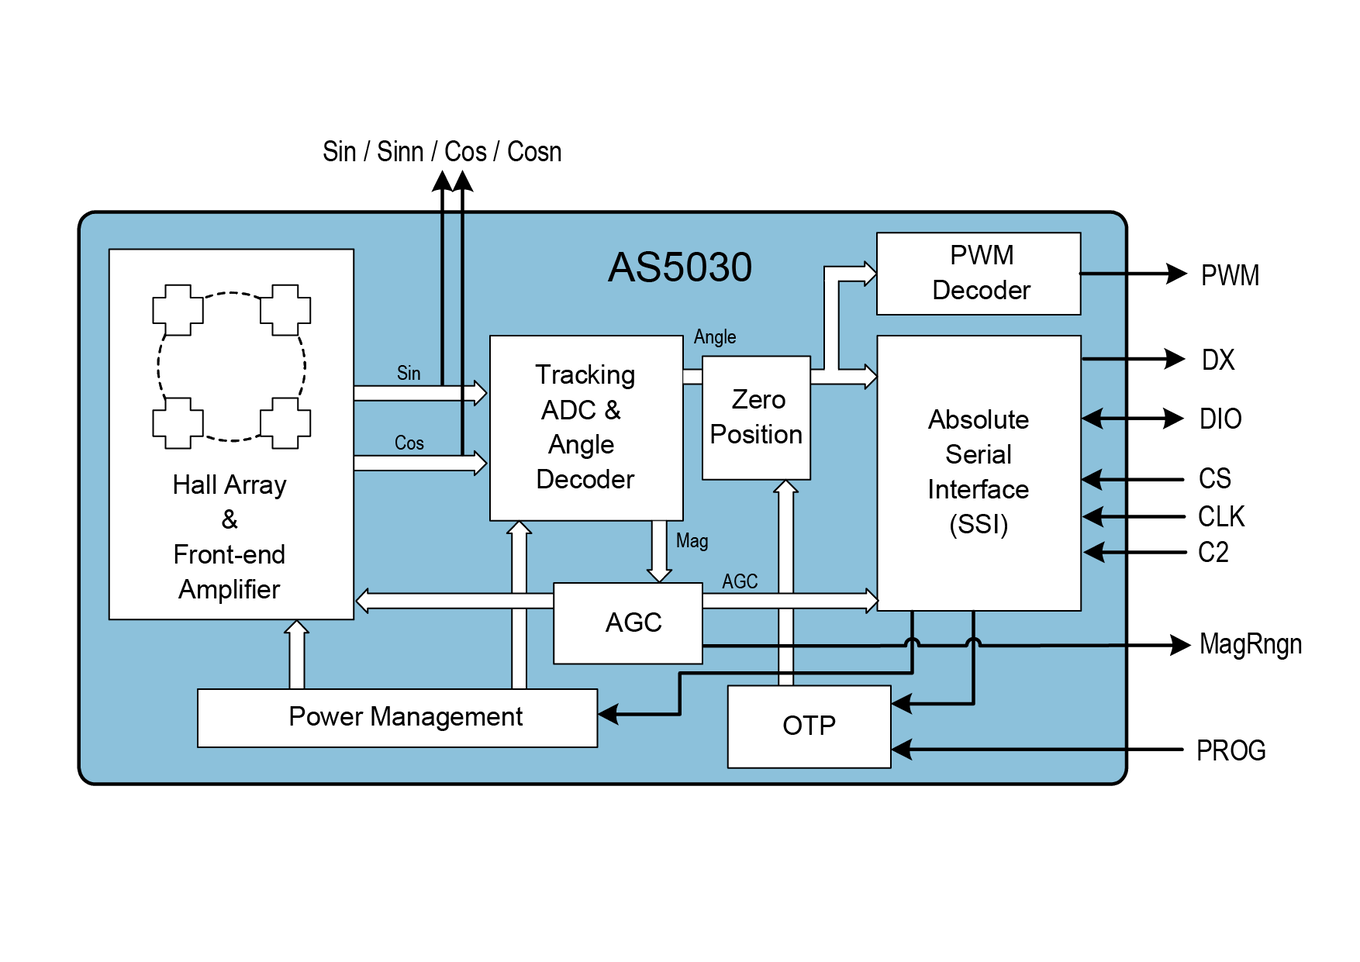 AS5030 Block Diagram